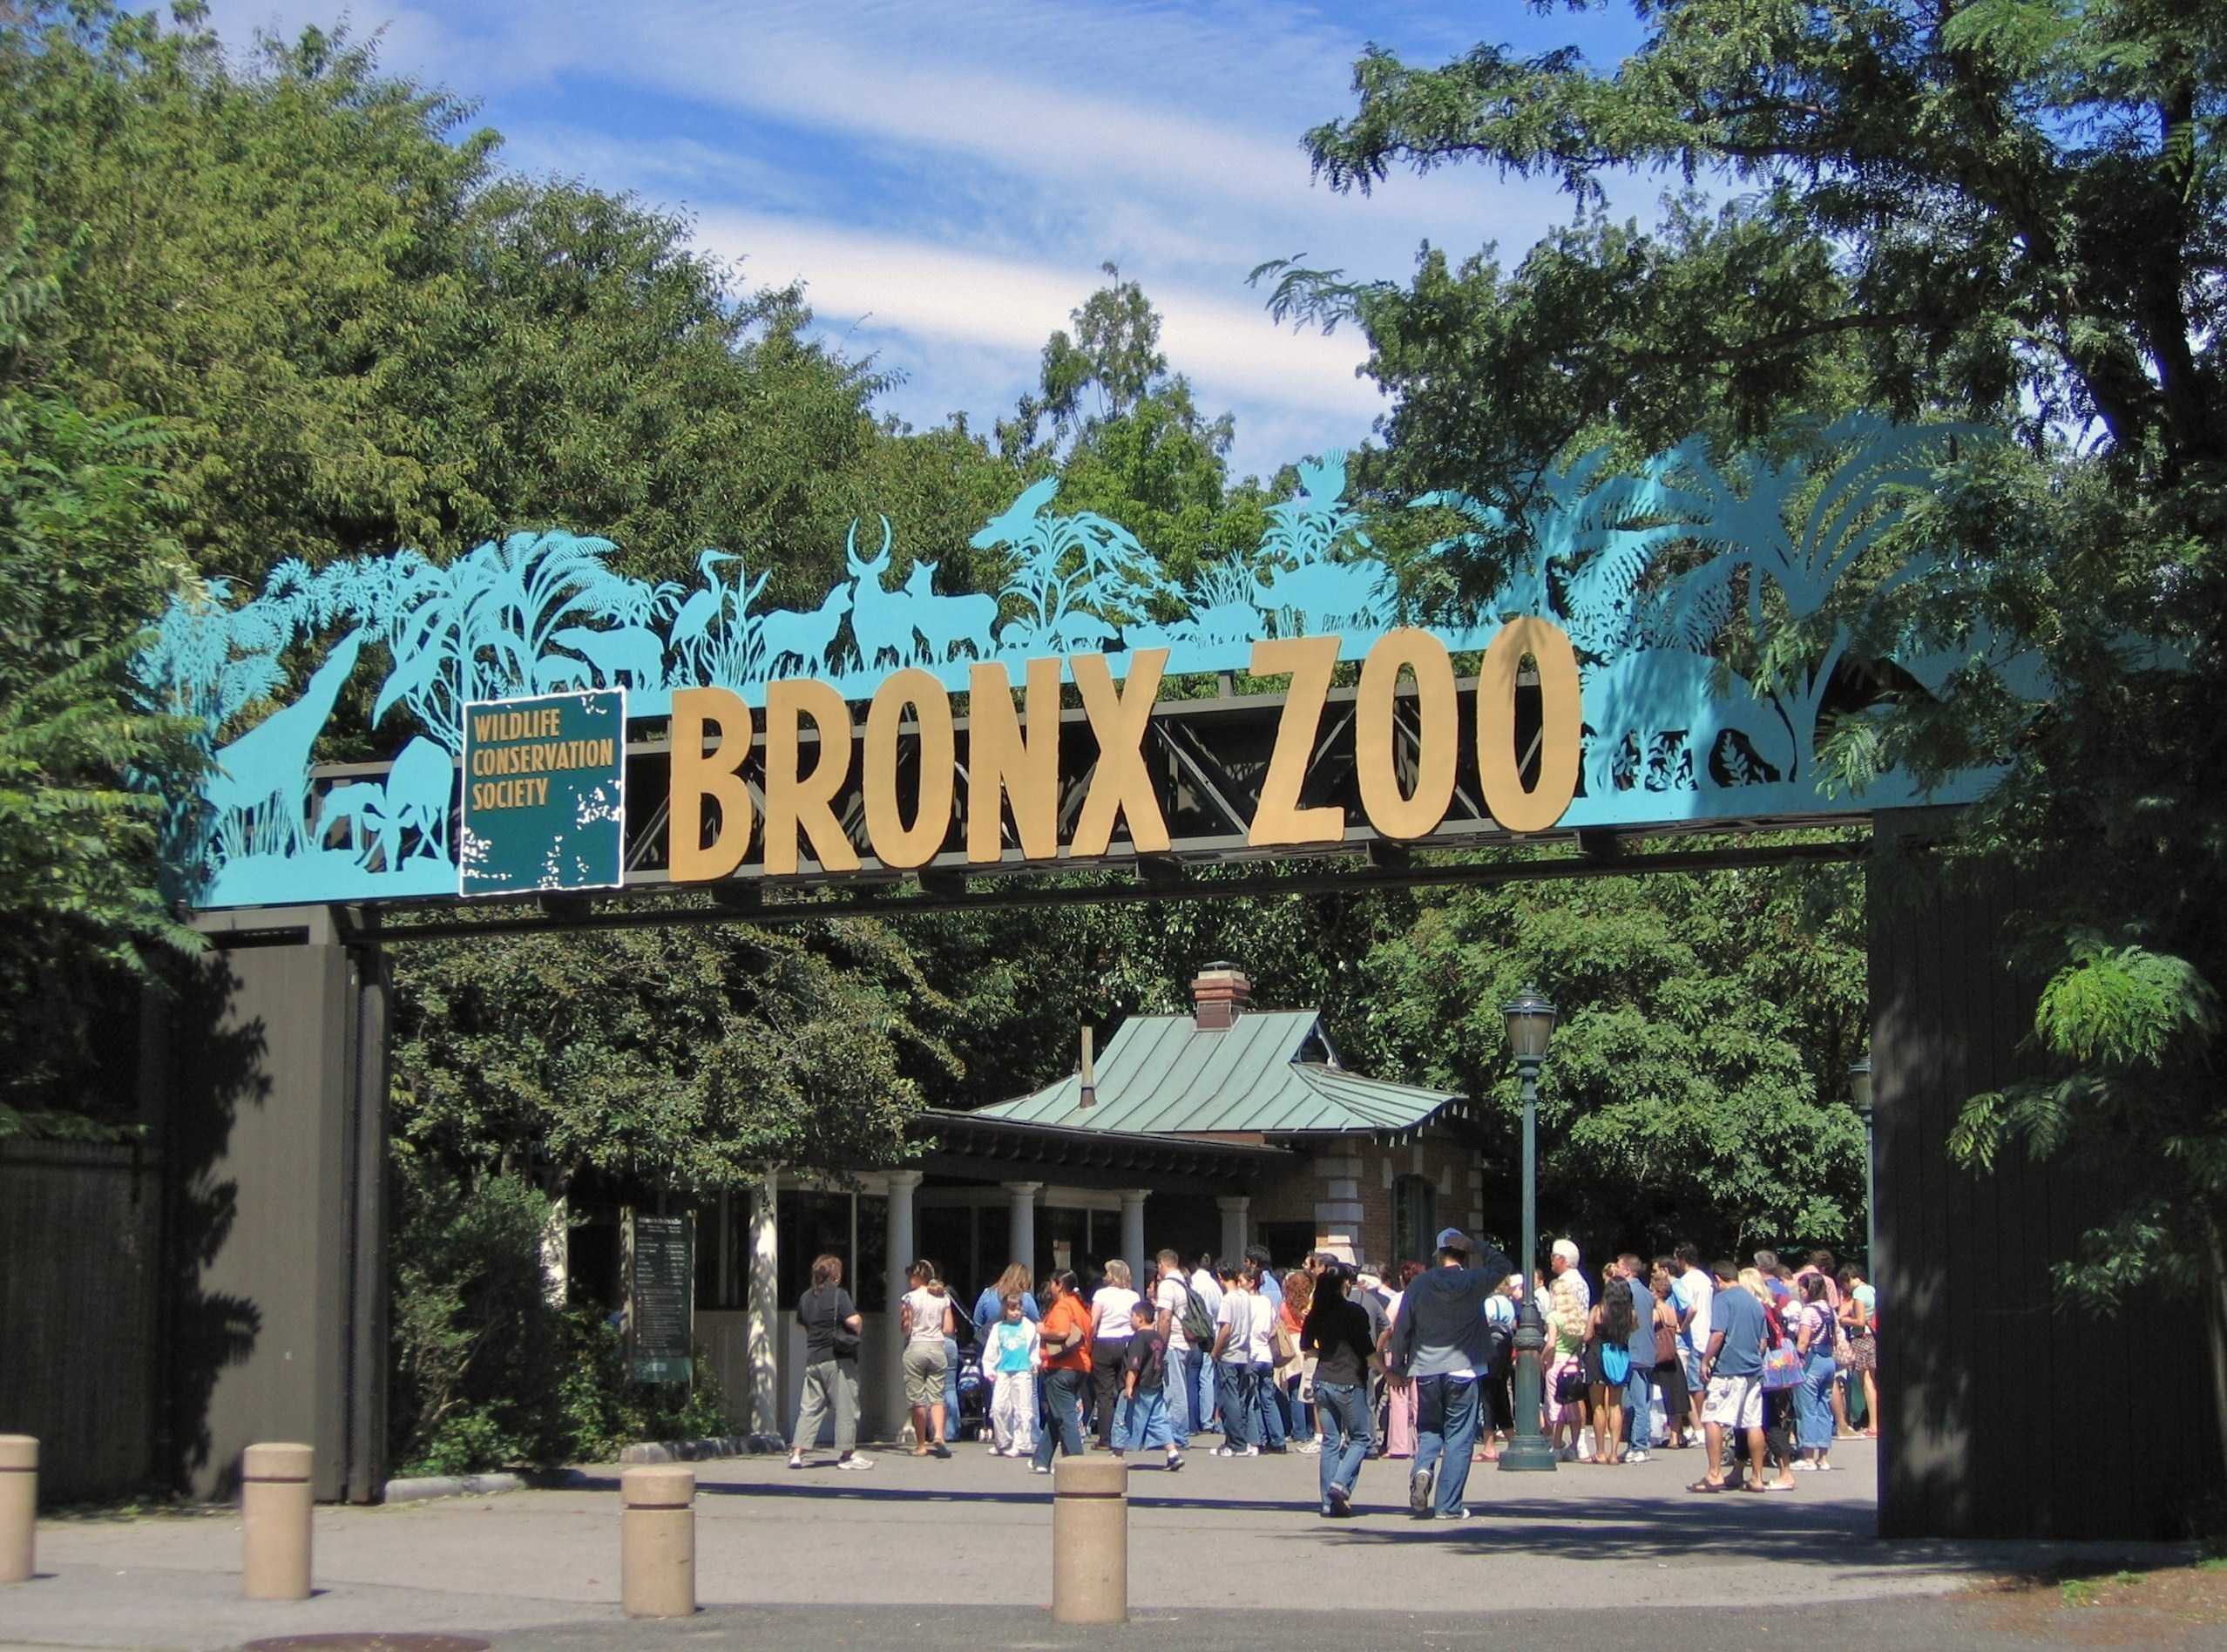 Bronx Zoo Sign, people standing underneath it